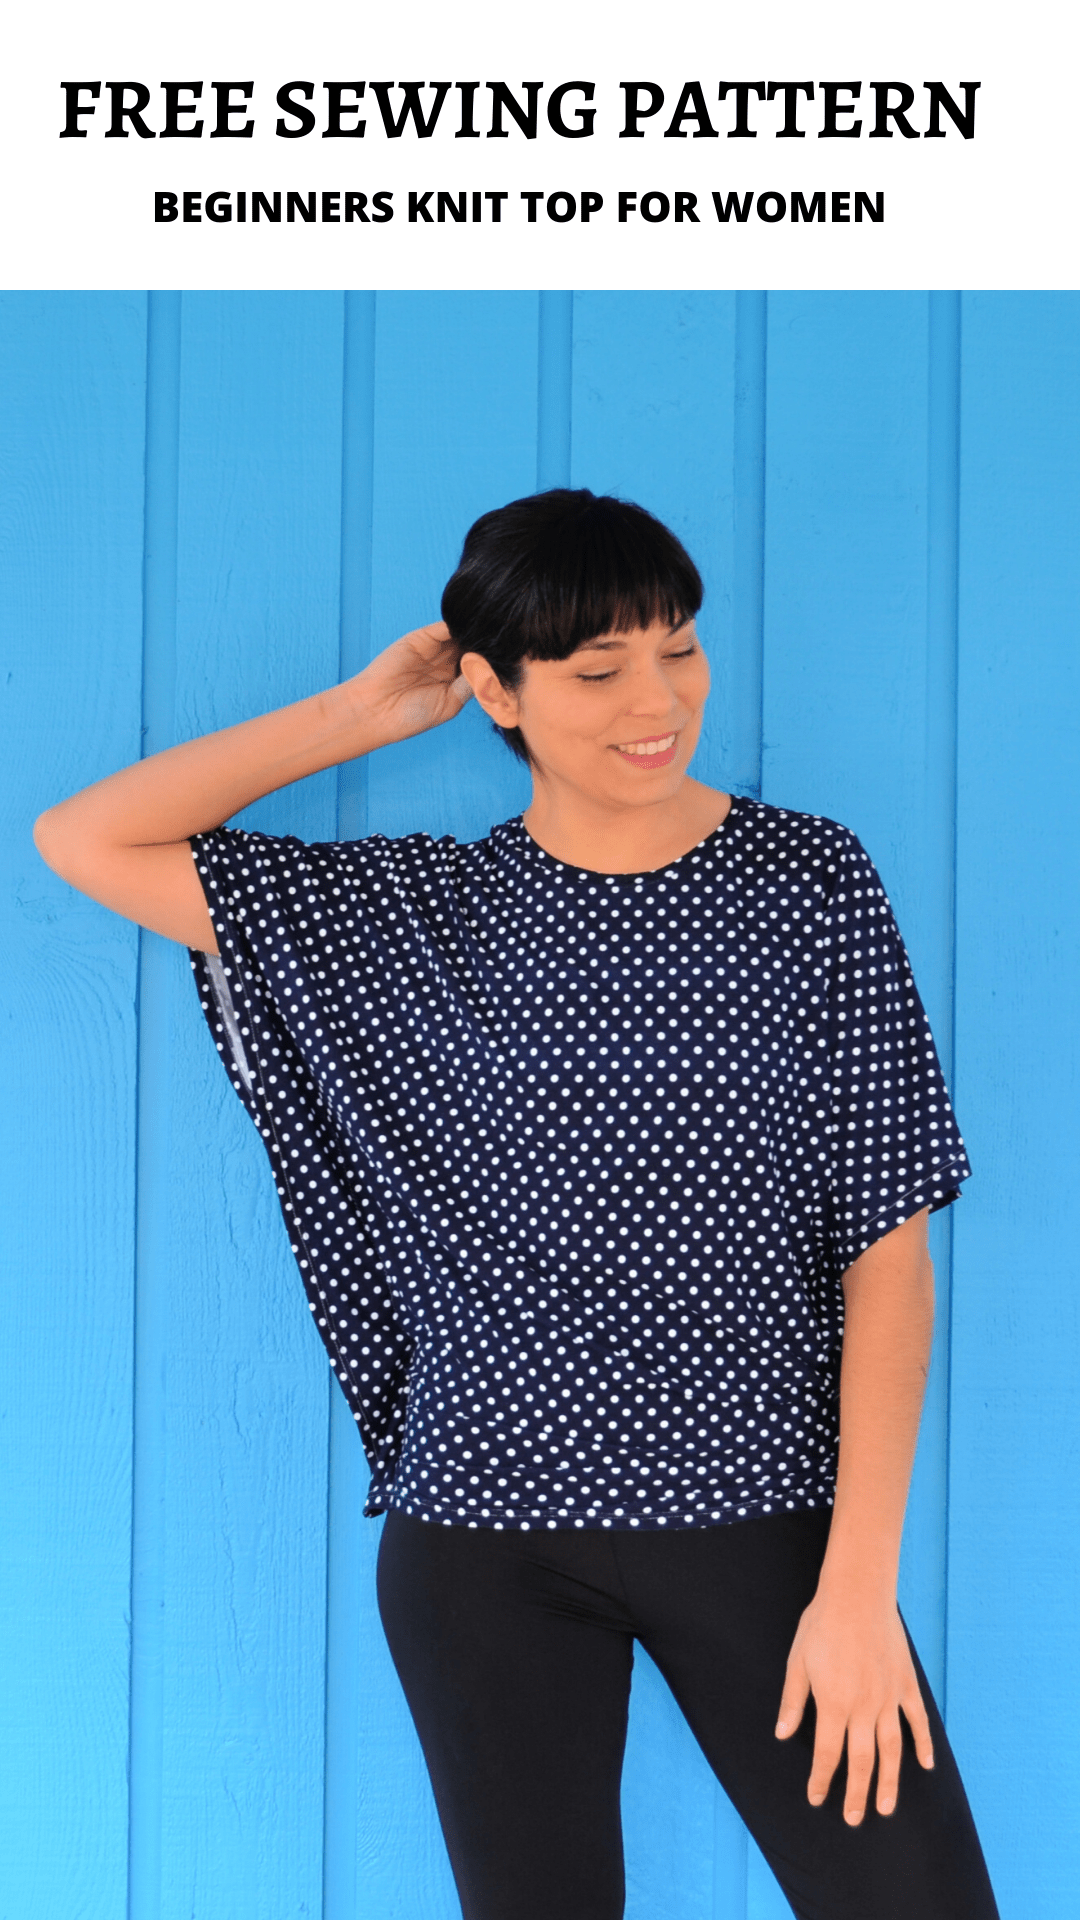 FREE SEWING PATTERN:  Beginners Knit top for Women